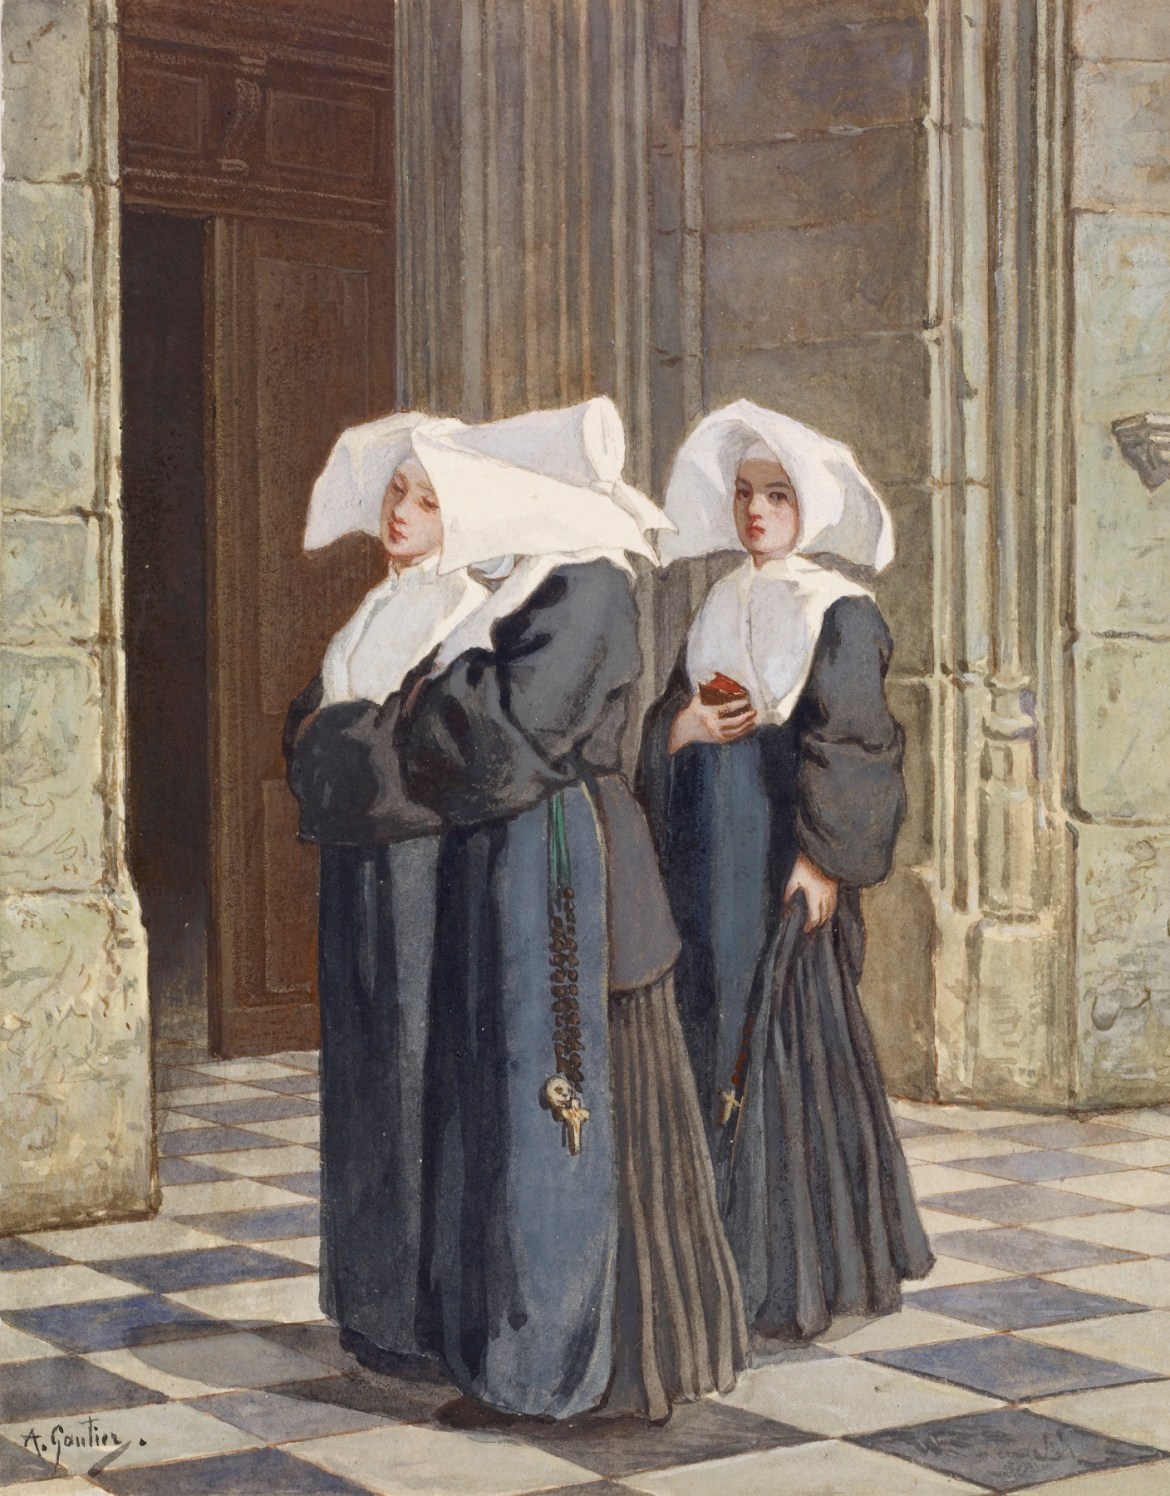 Armand_Gautier_-_Three_Nuns_in_the_Portal_of_a_Church_-_Walters_371383